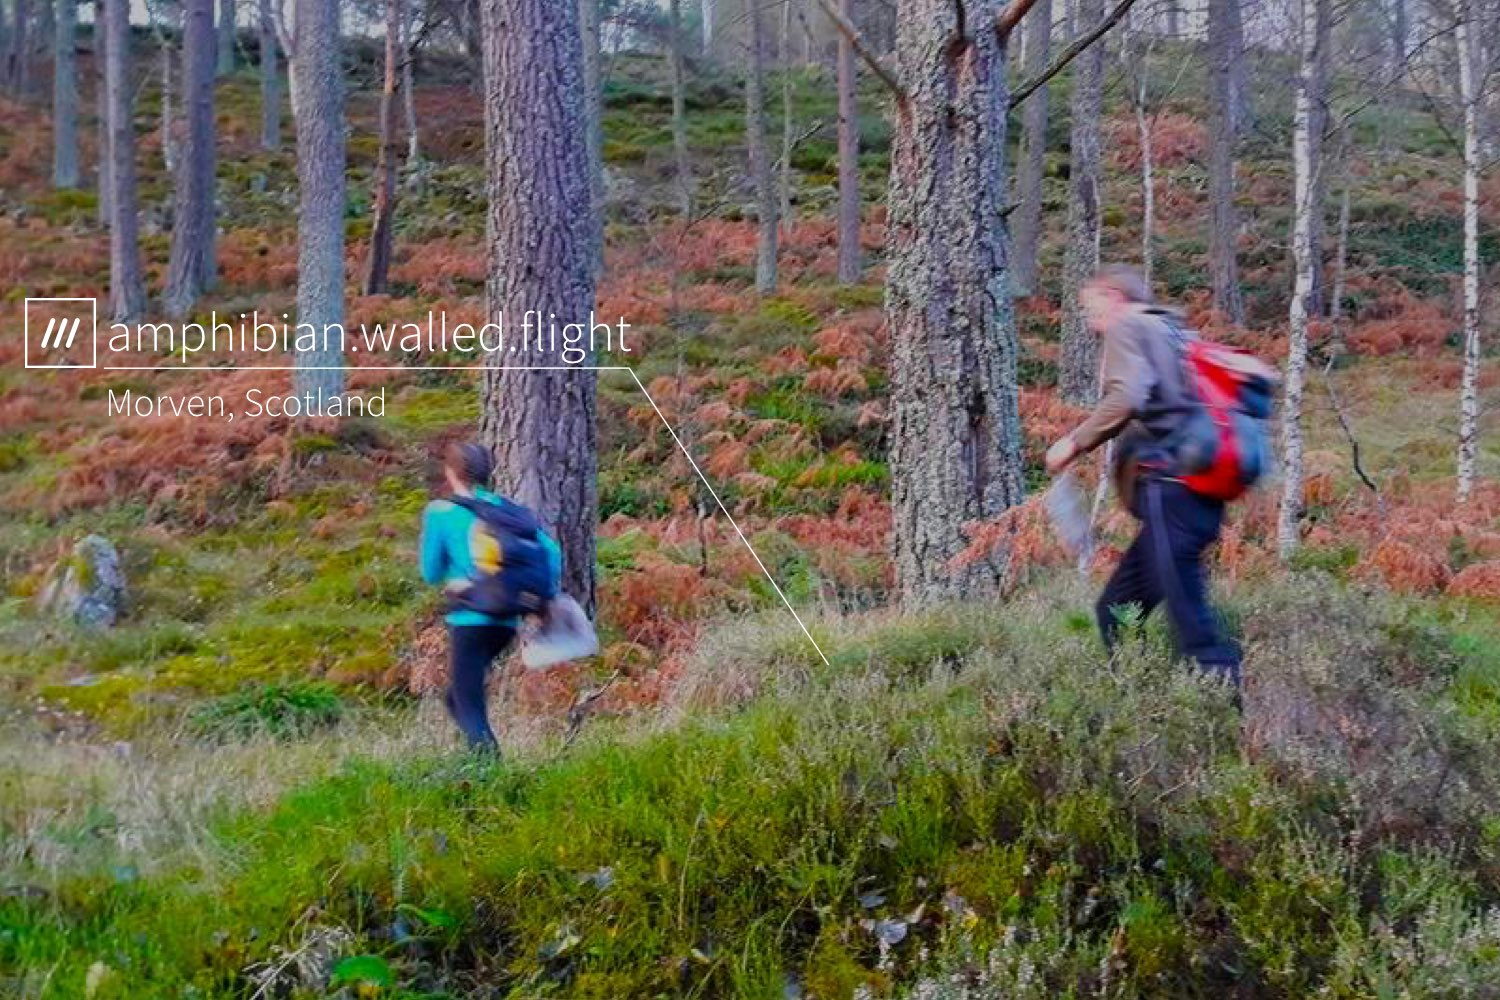 blurry kids running through a forest at 3 words address amphibian.walled.flight